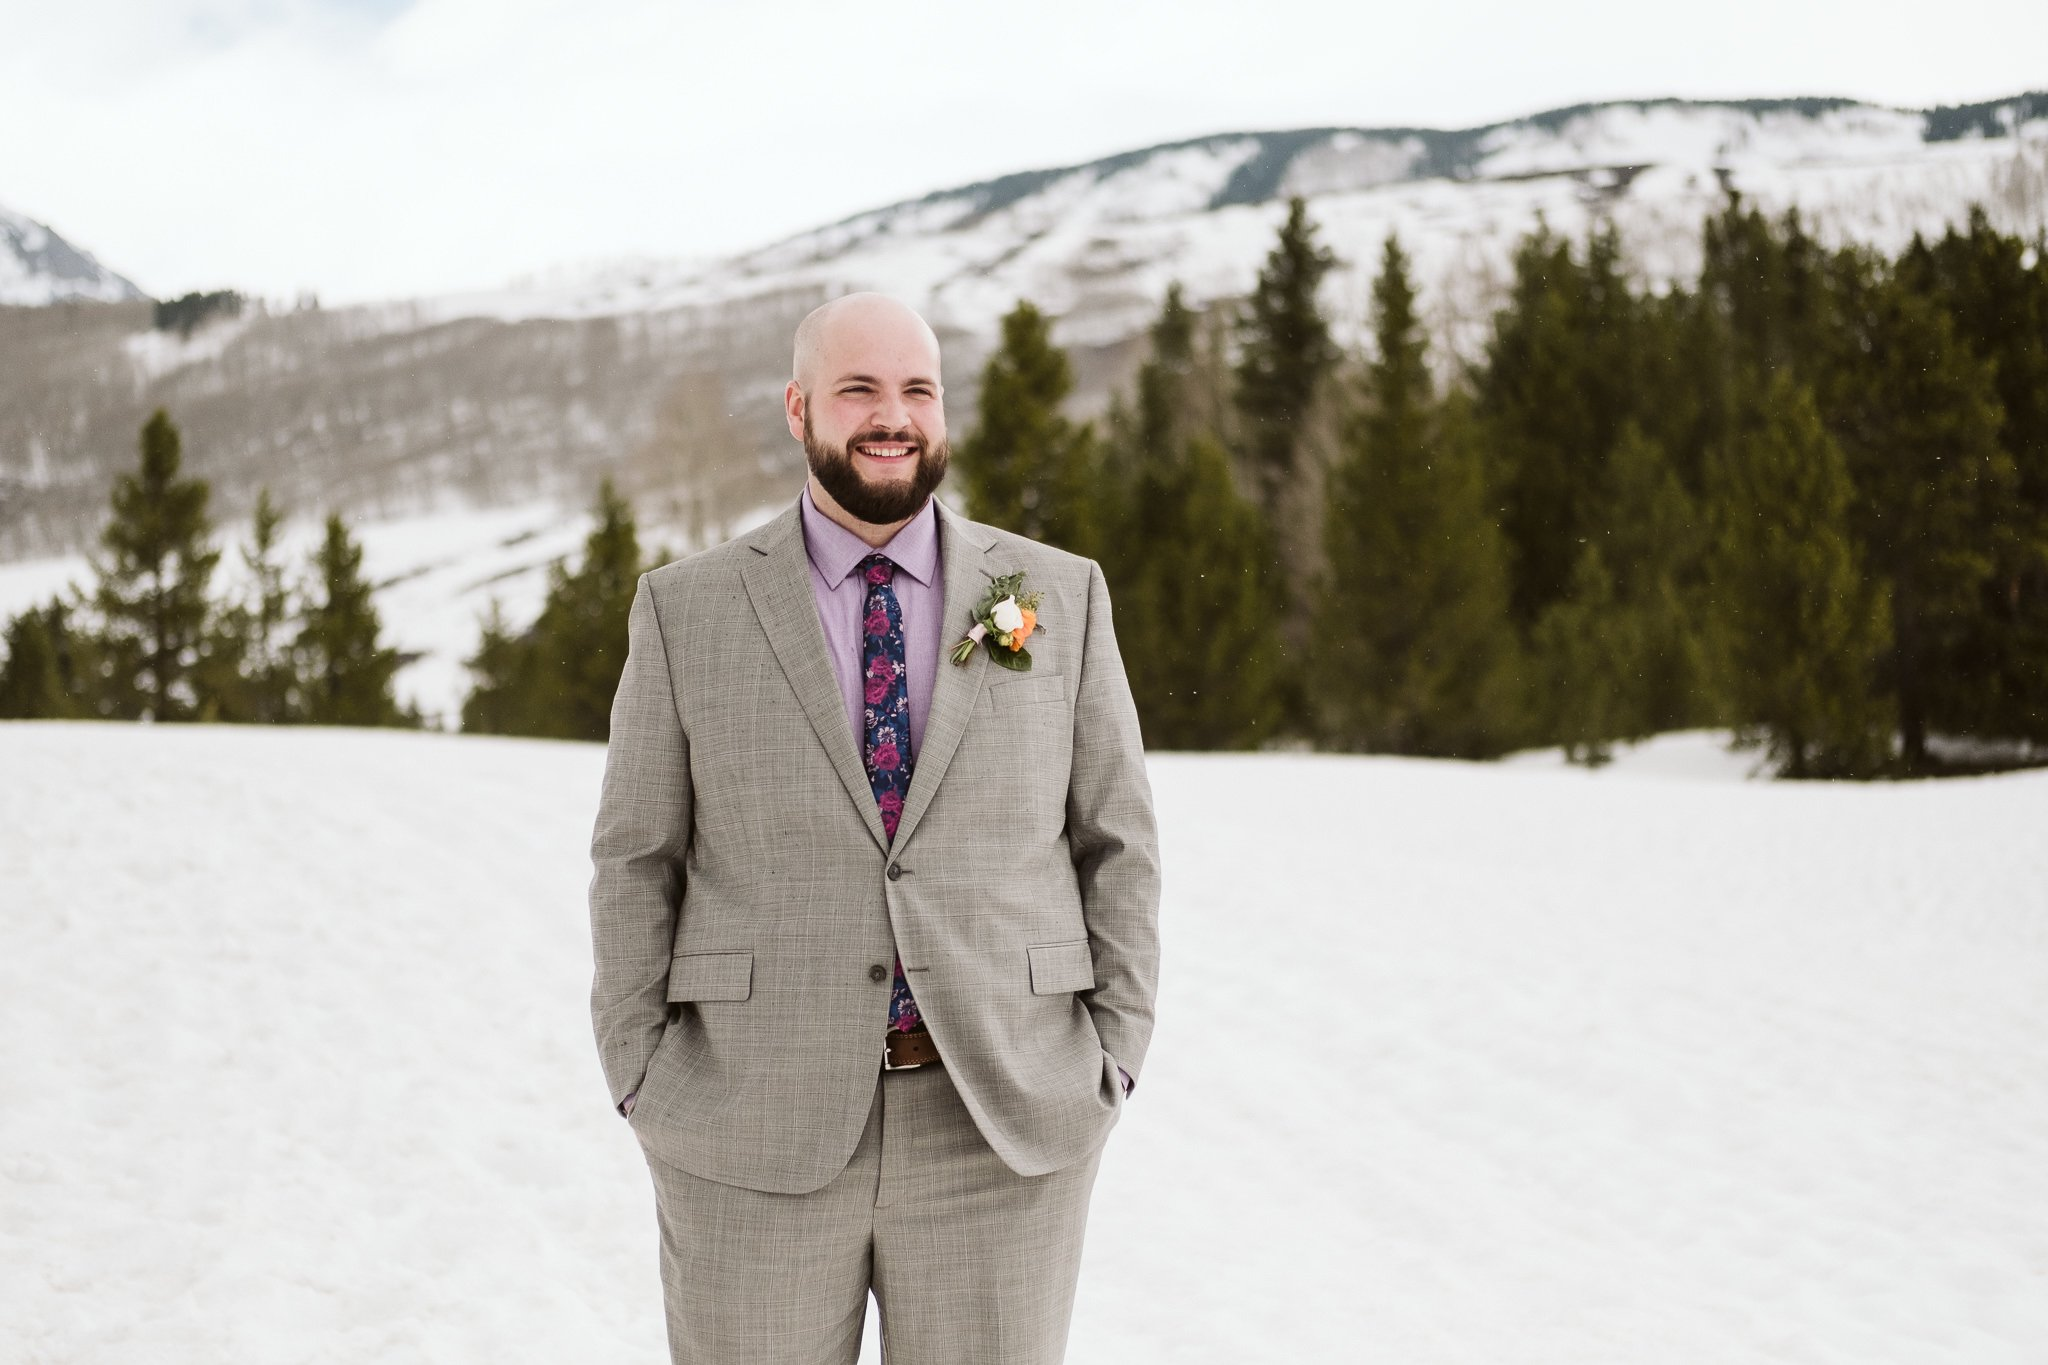 Groom wearing grey suit and purple shirt and tie for winter wedding